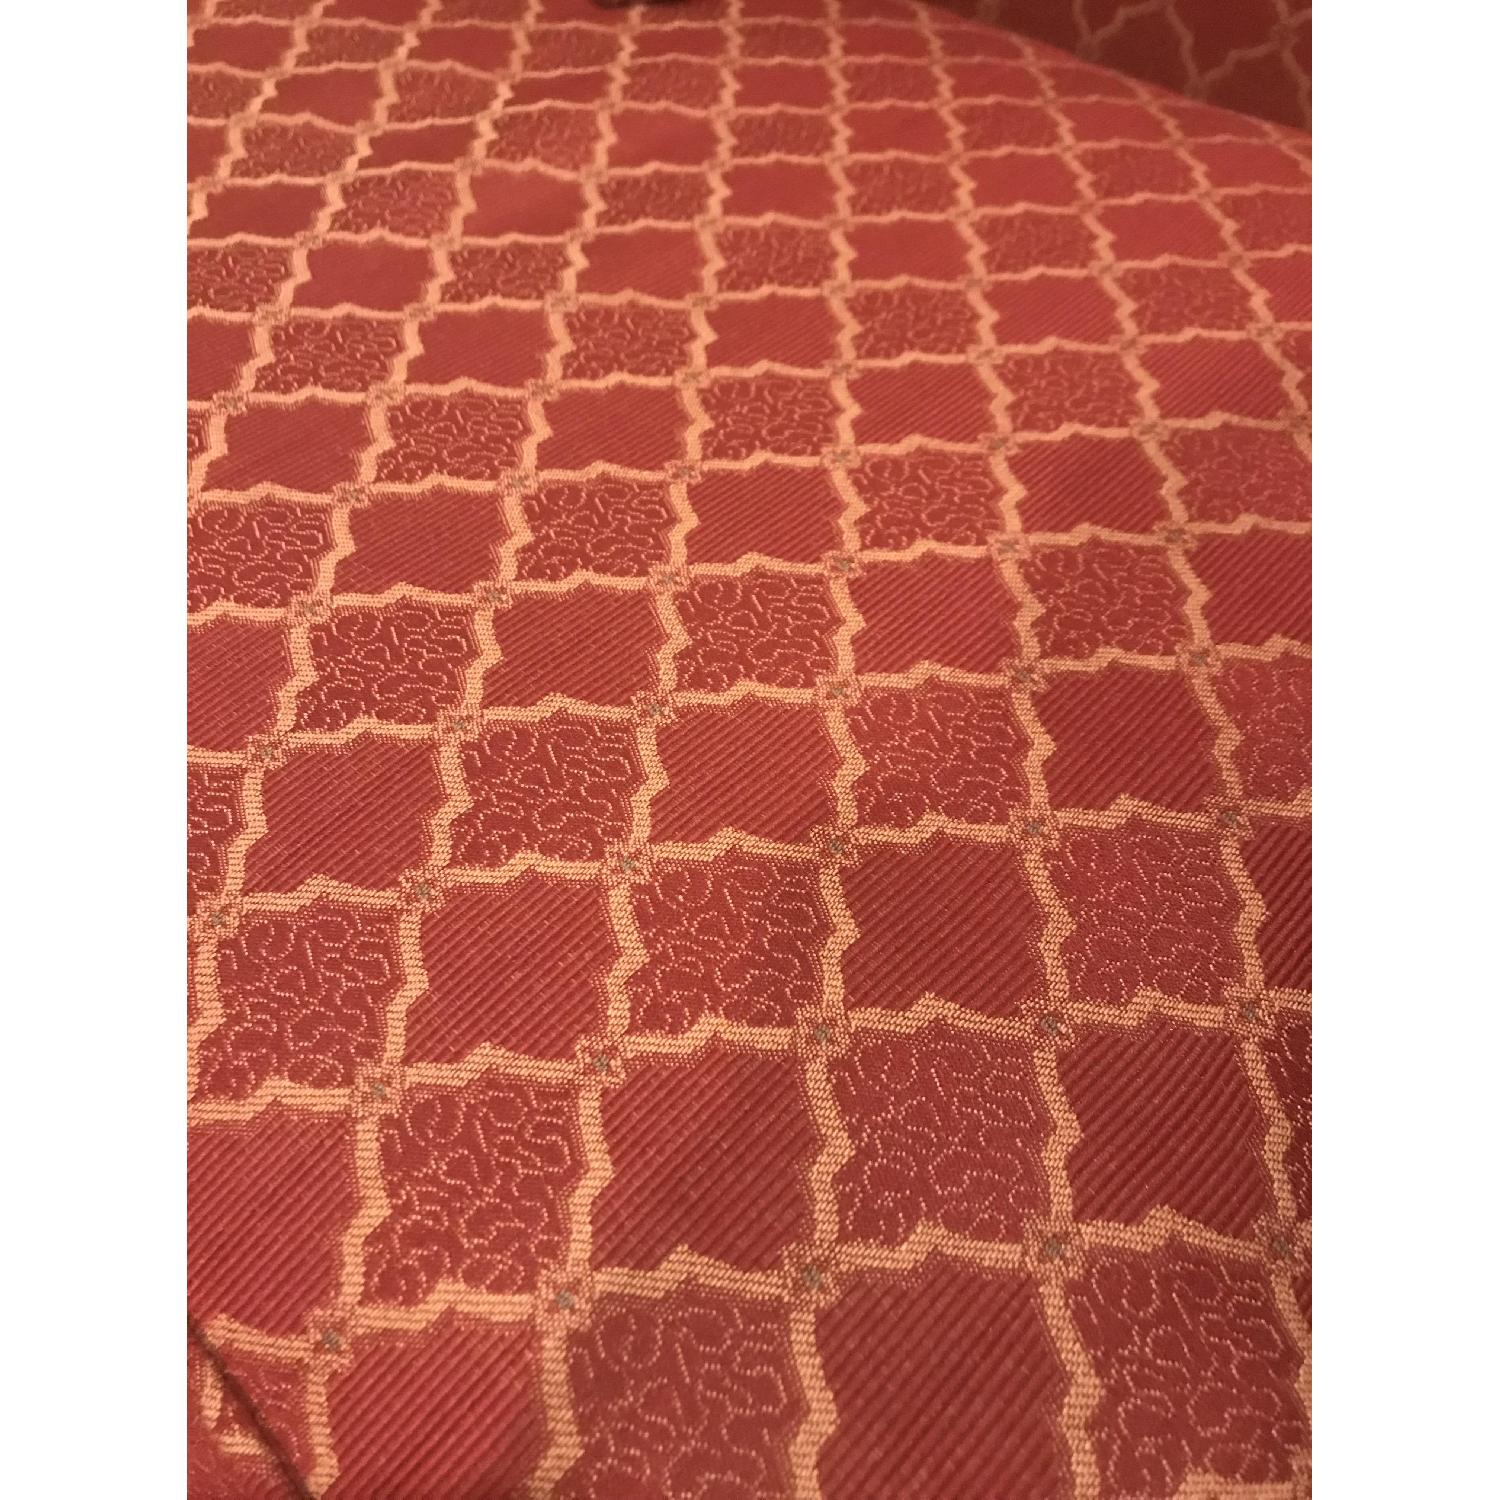 Vintage Style Patterned Red Sofa-1